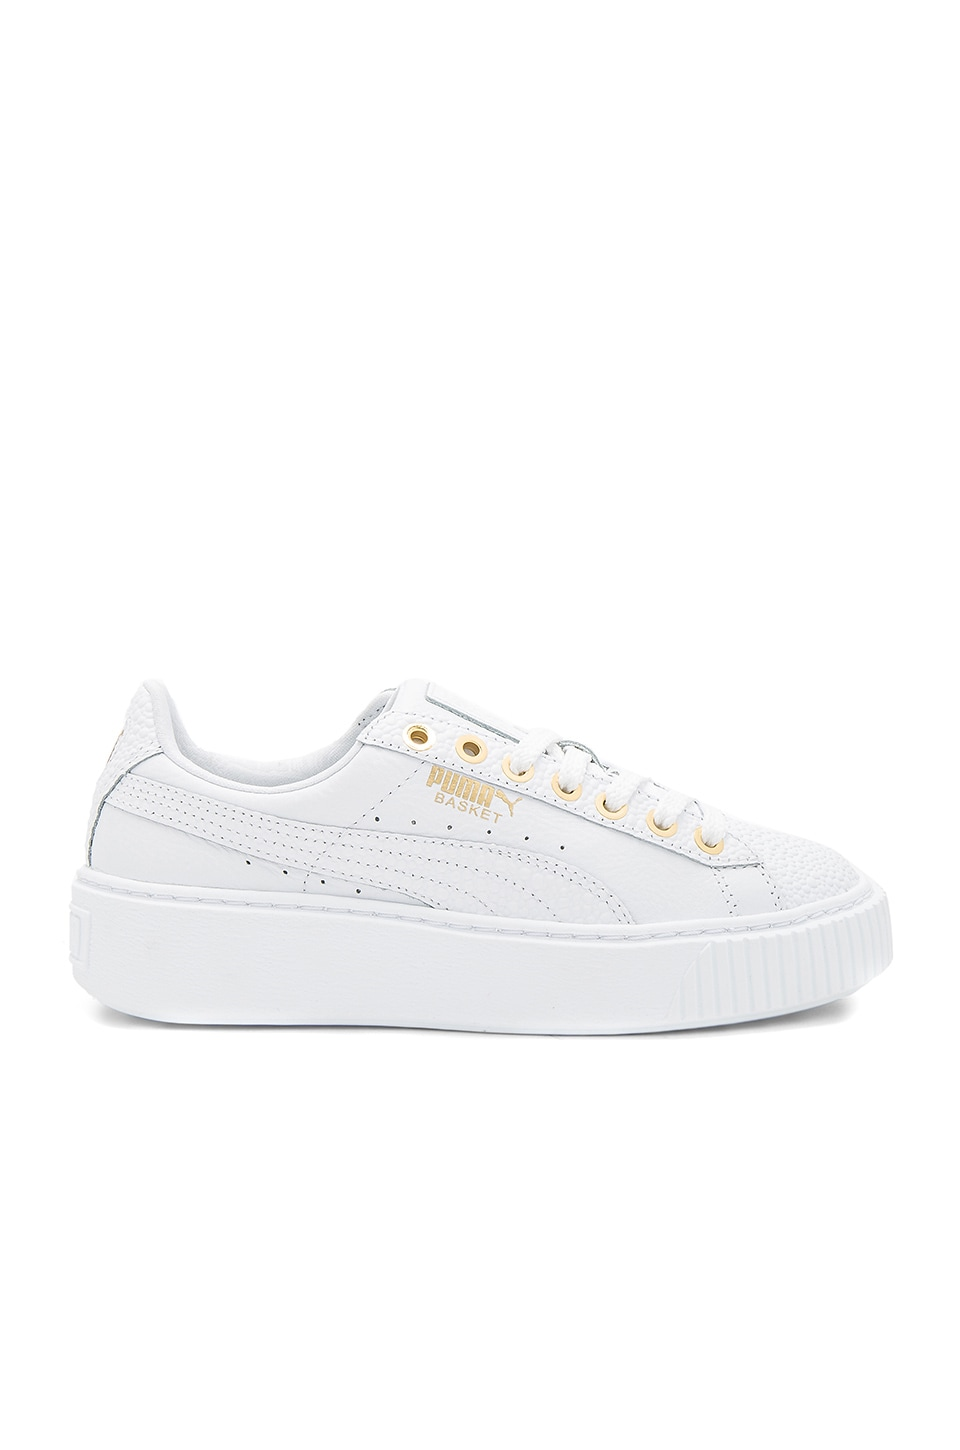 Puma Basket Pearlized Platform in in Puma White